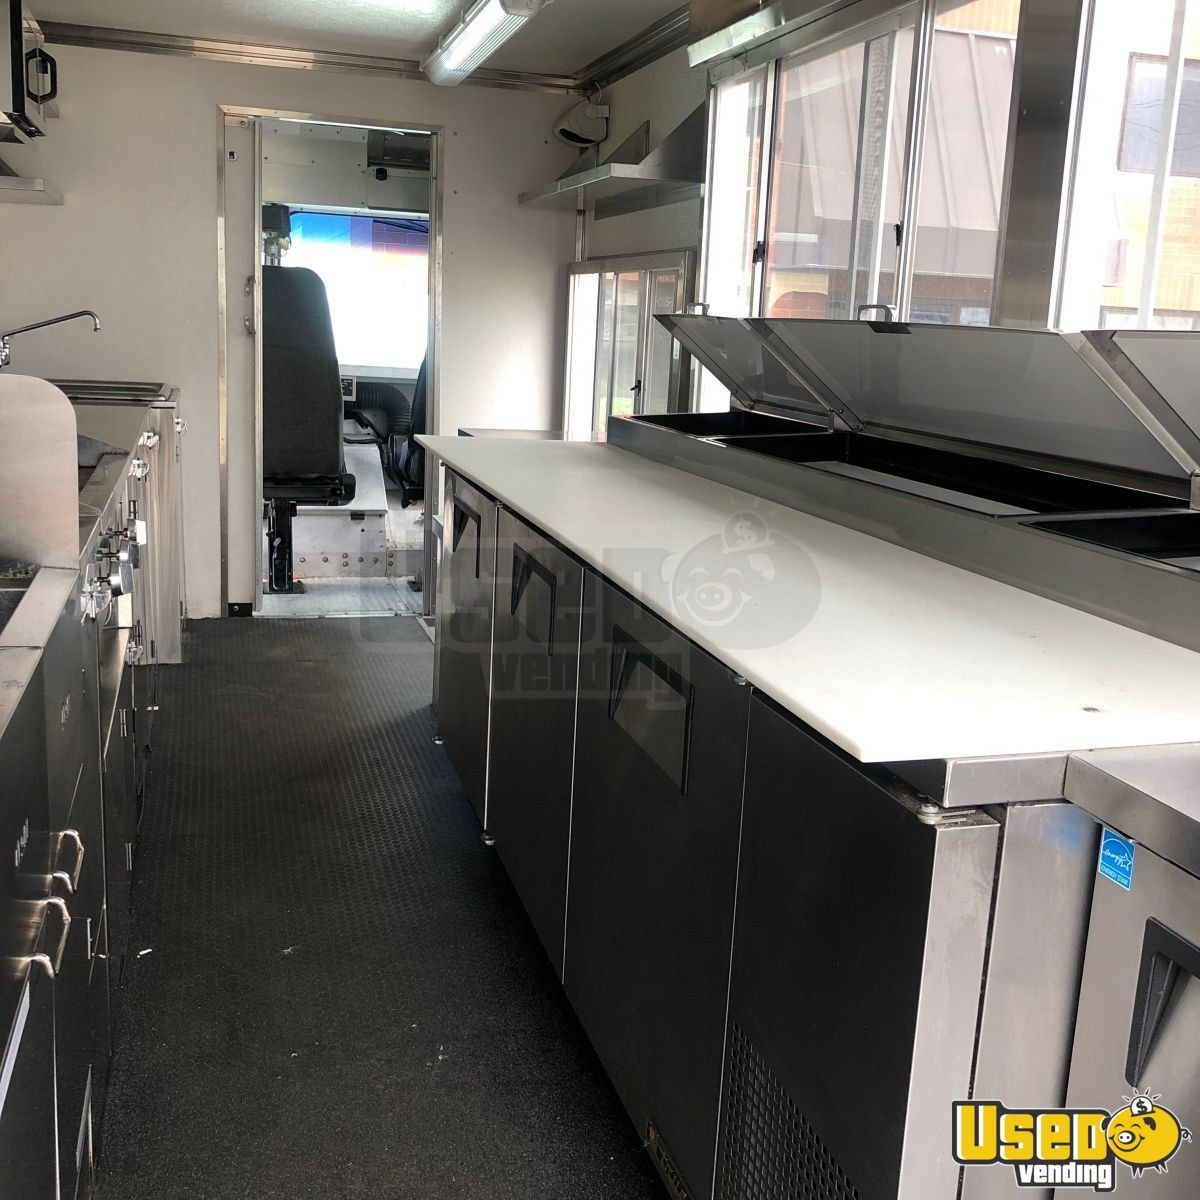 2009 Workhorse Diesel All-purpose Food Truck Prep Station Cooler Utah Diesel Engine for Sale - 5